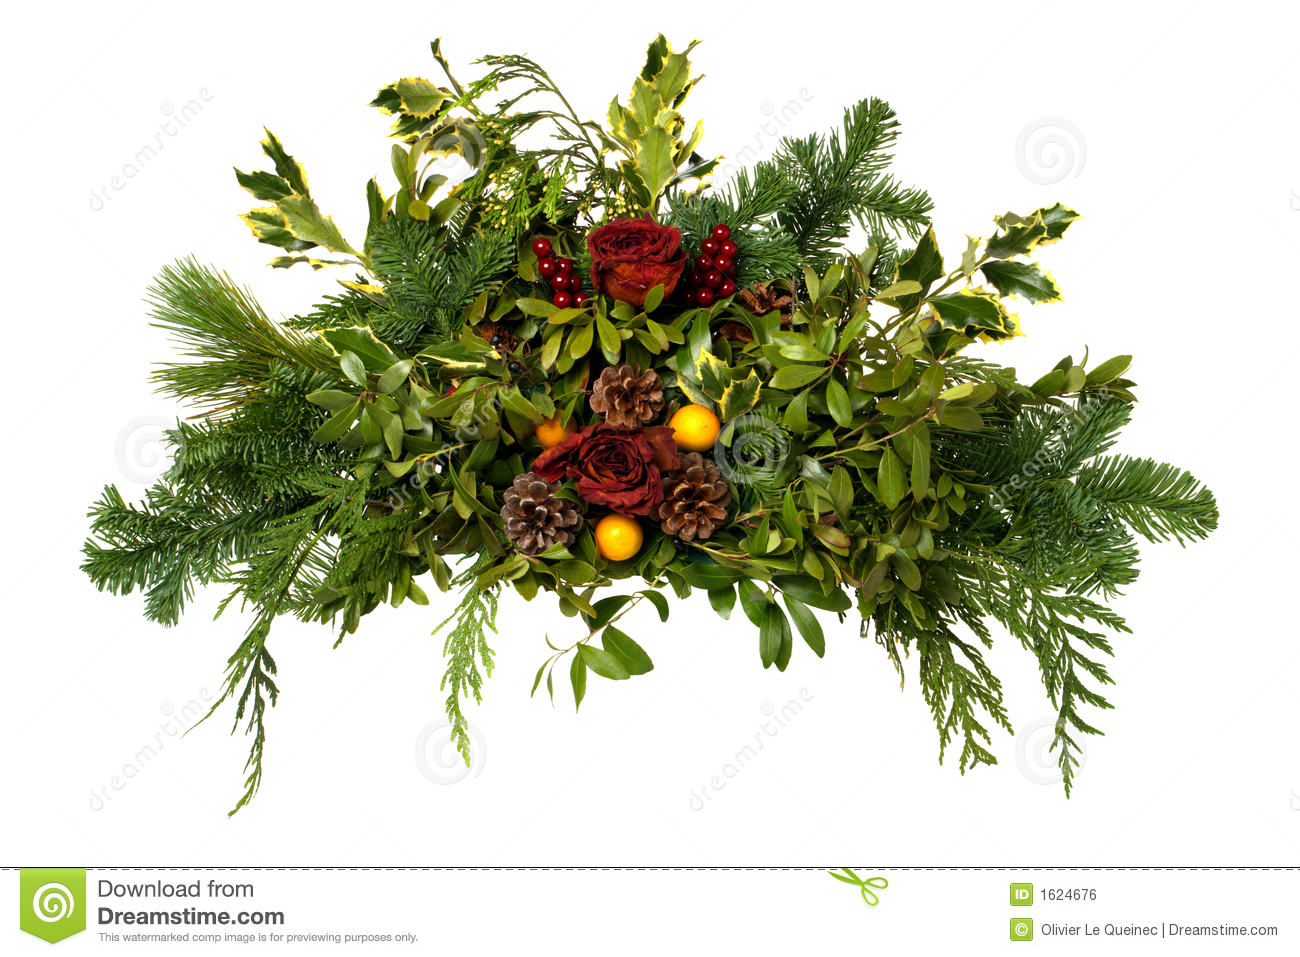 Christmas Arrangement with Pine Cones Isolated